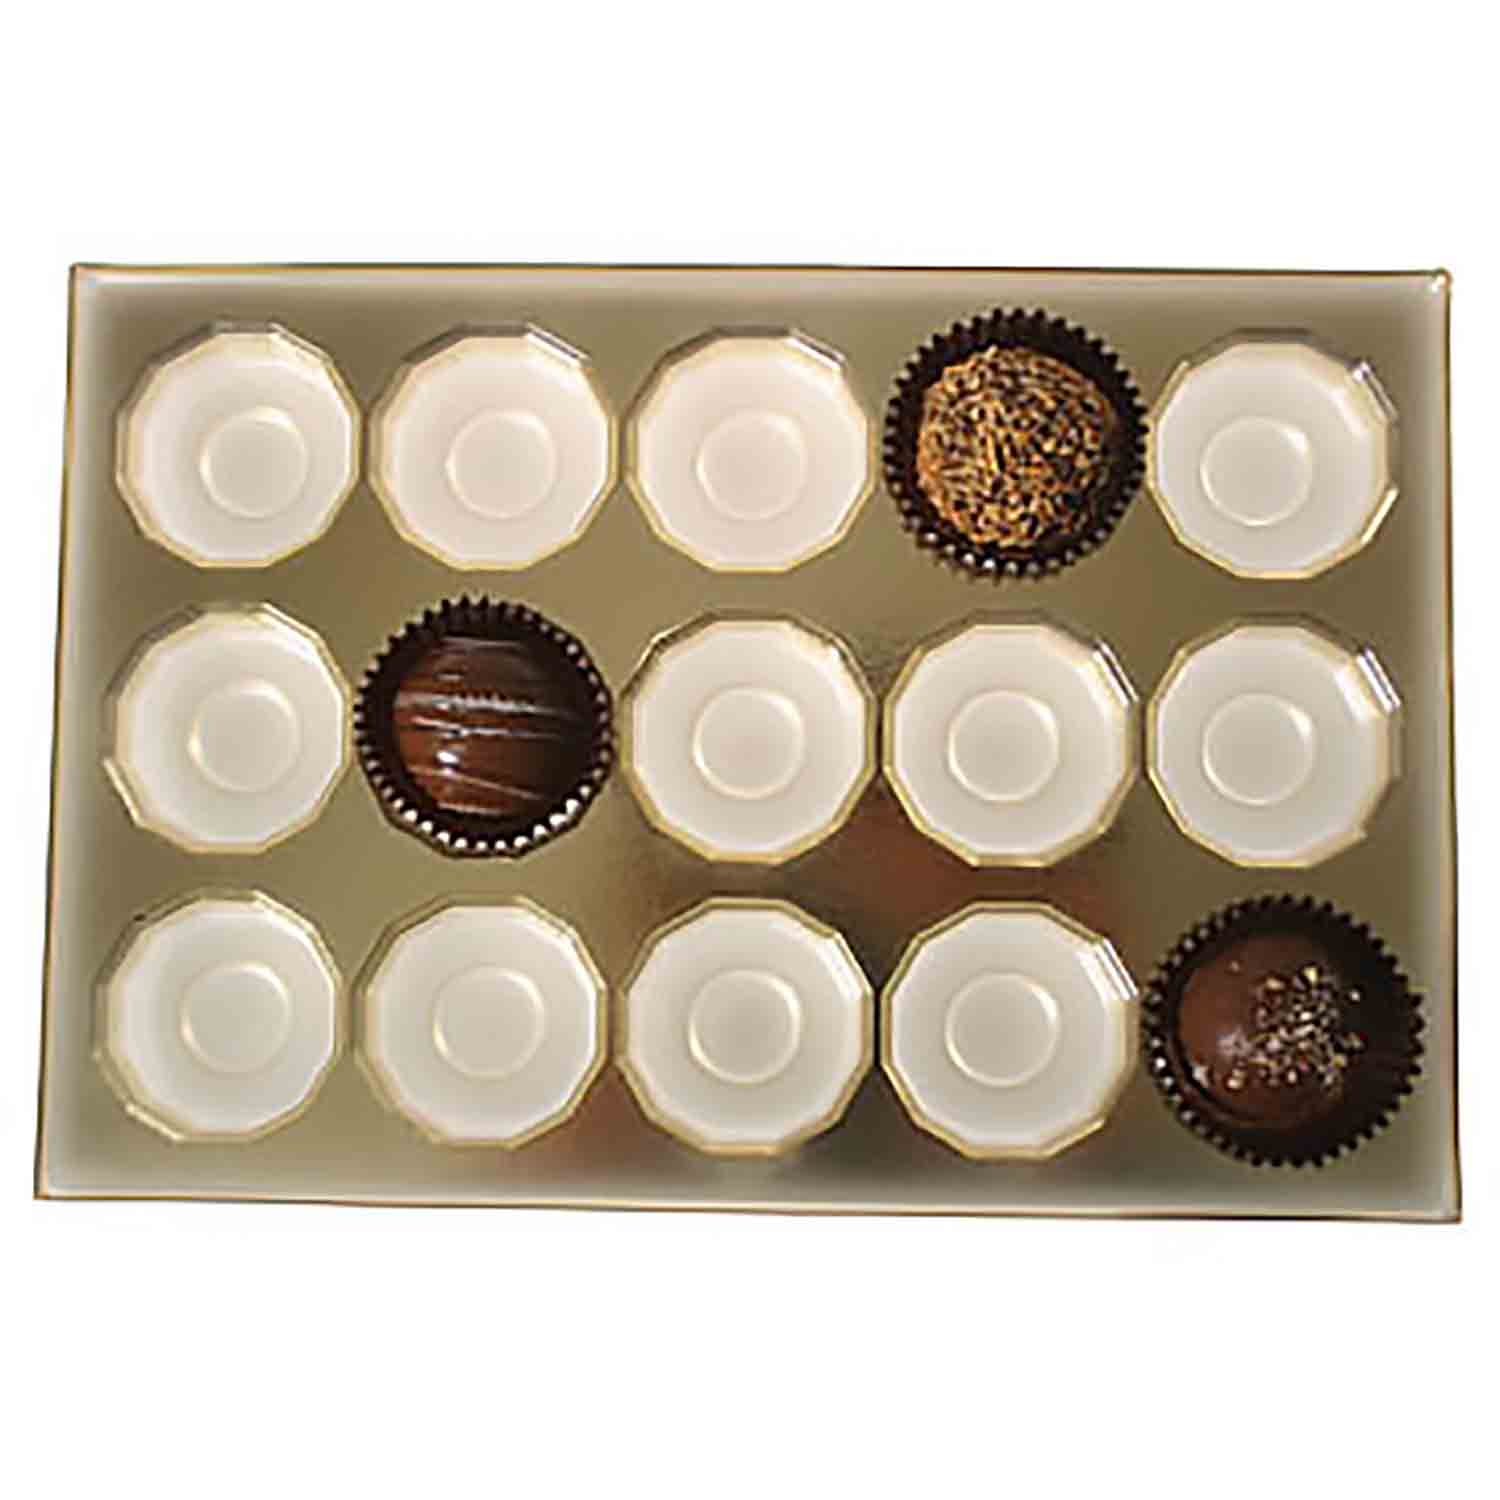 1 lb. Box Insert- #5 cup, 15 cavity